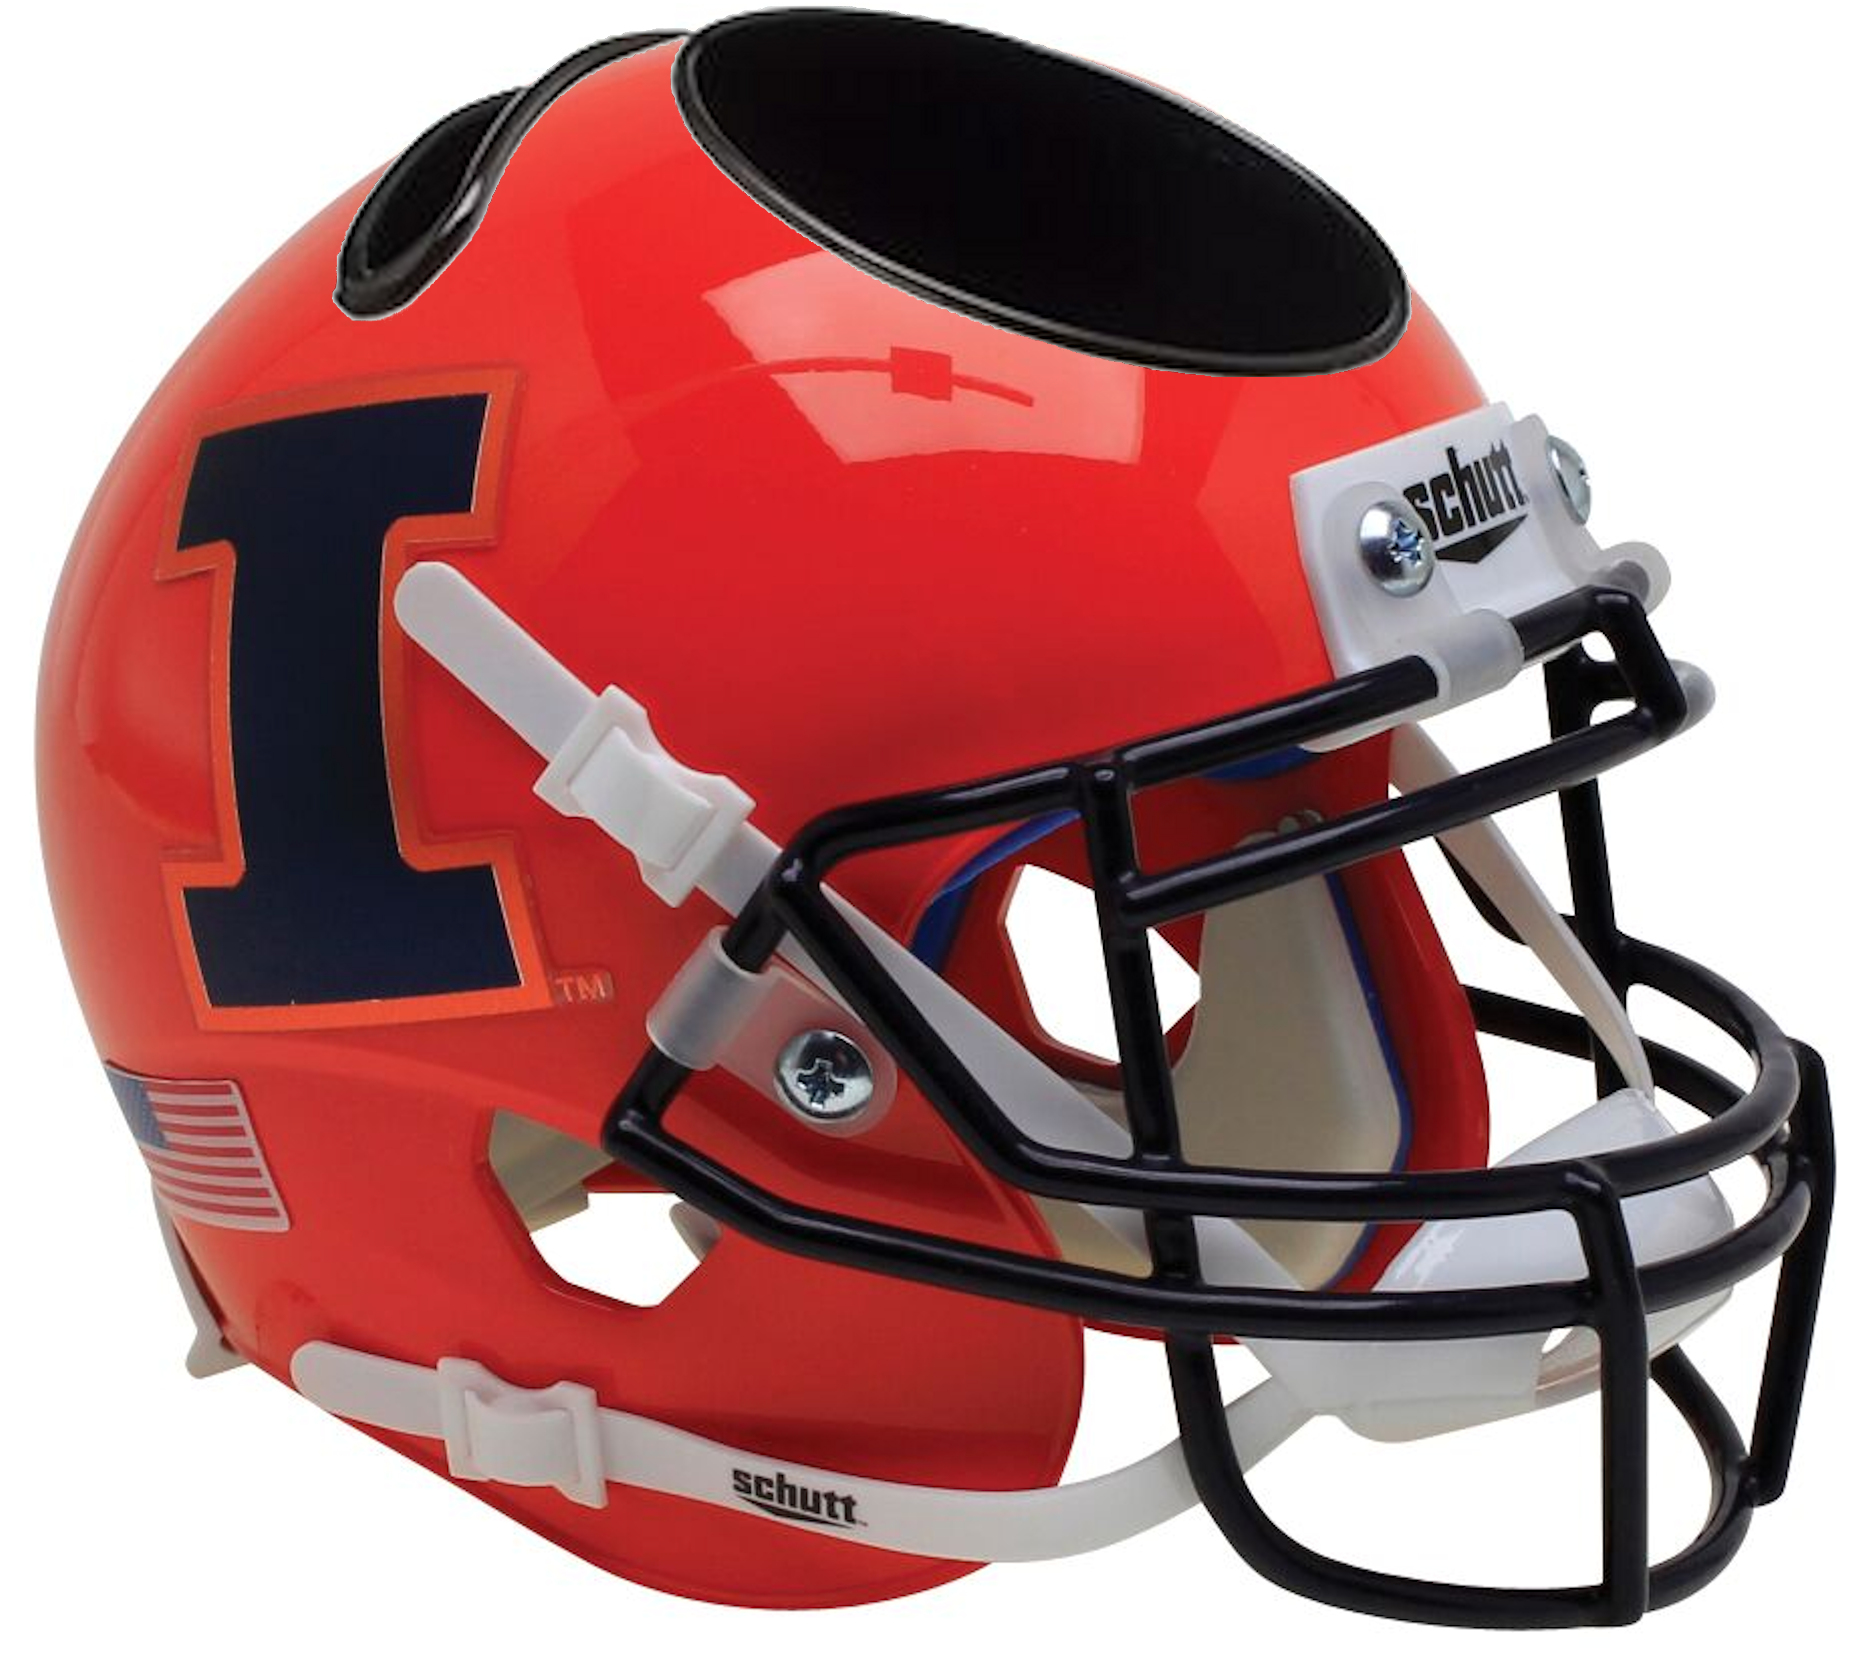 Illinois Fighting Illini Miniature Football Helmet Desk Caddy <B>Orange</B>